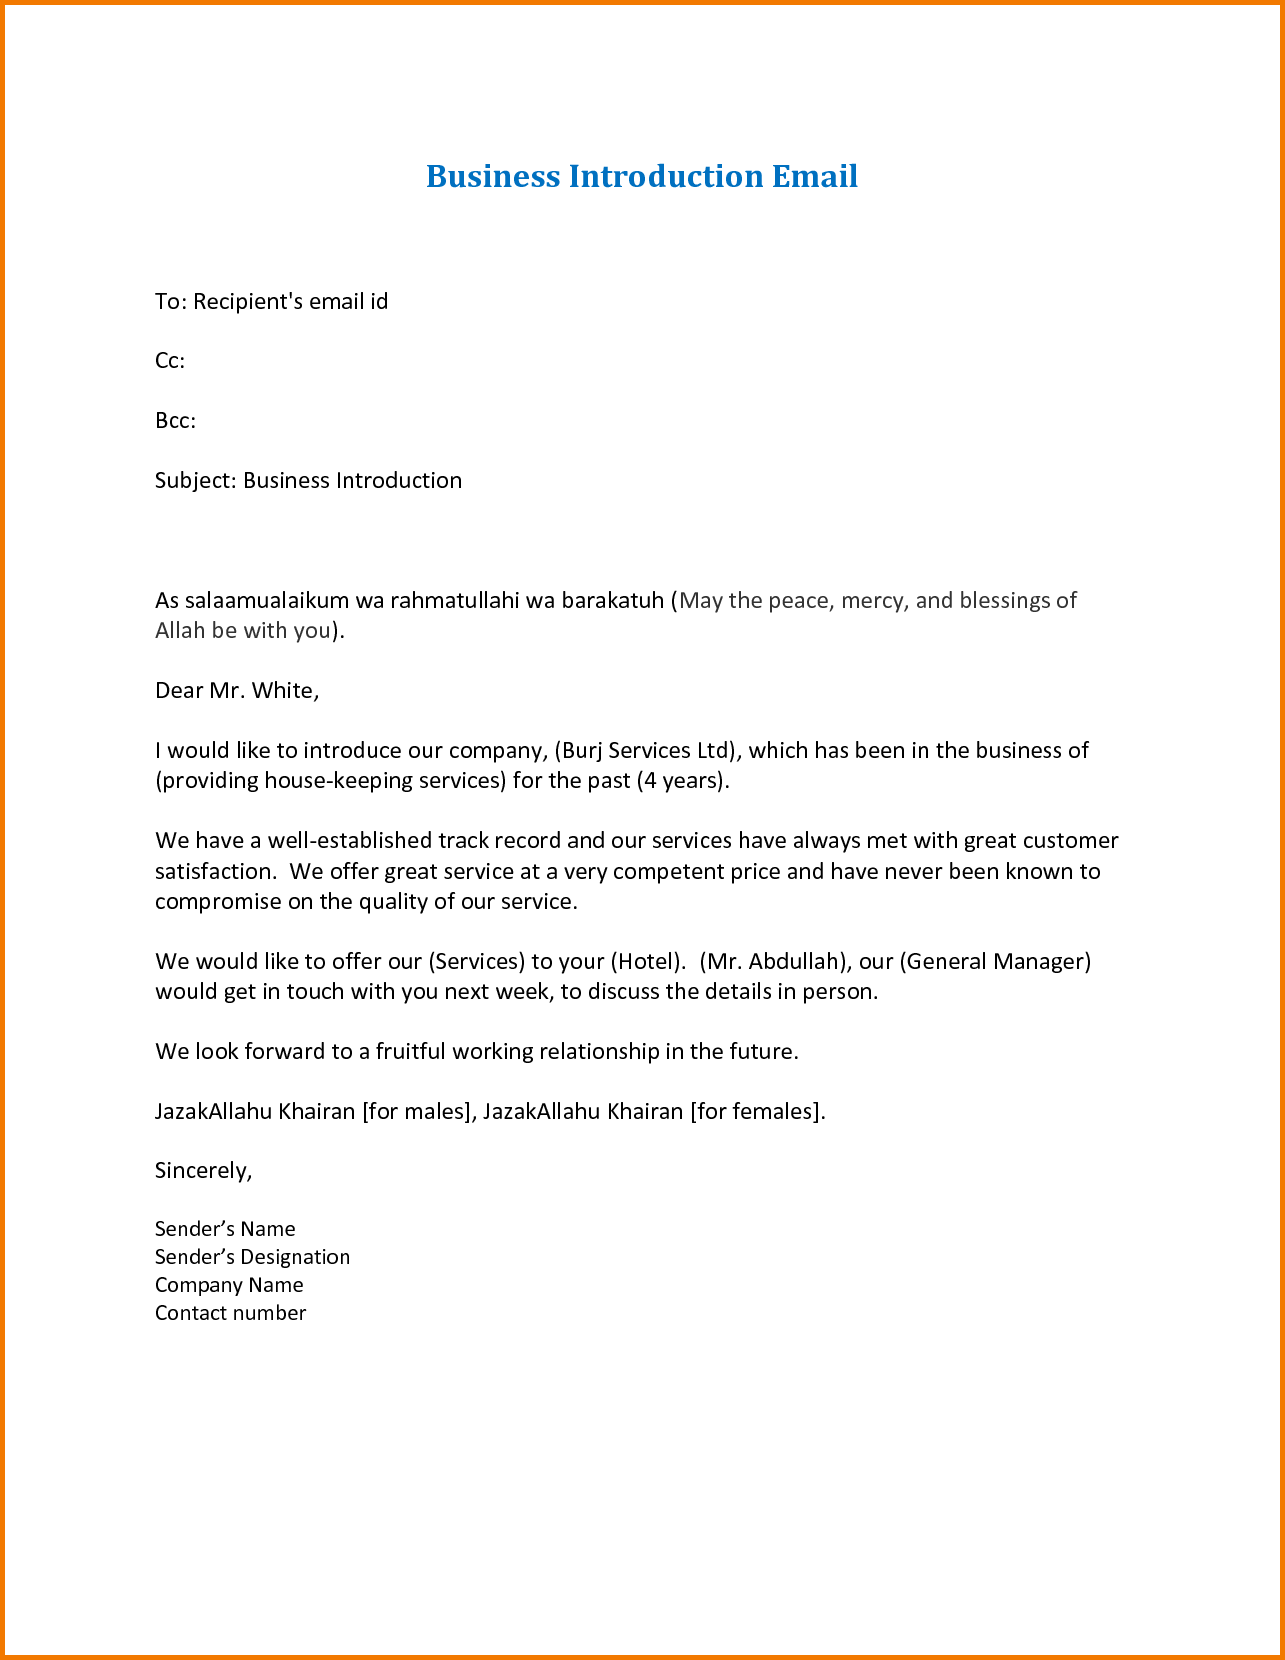 Company introduction email template letter civil contractor formal company introduction email template letter civil contractor formal format flashek Choice Image